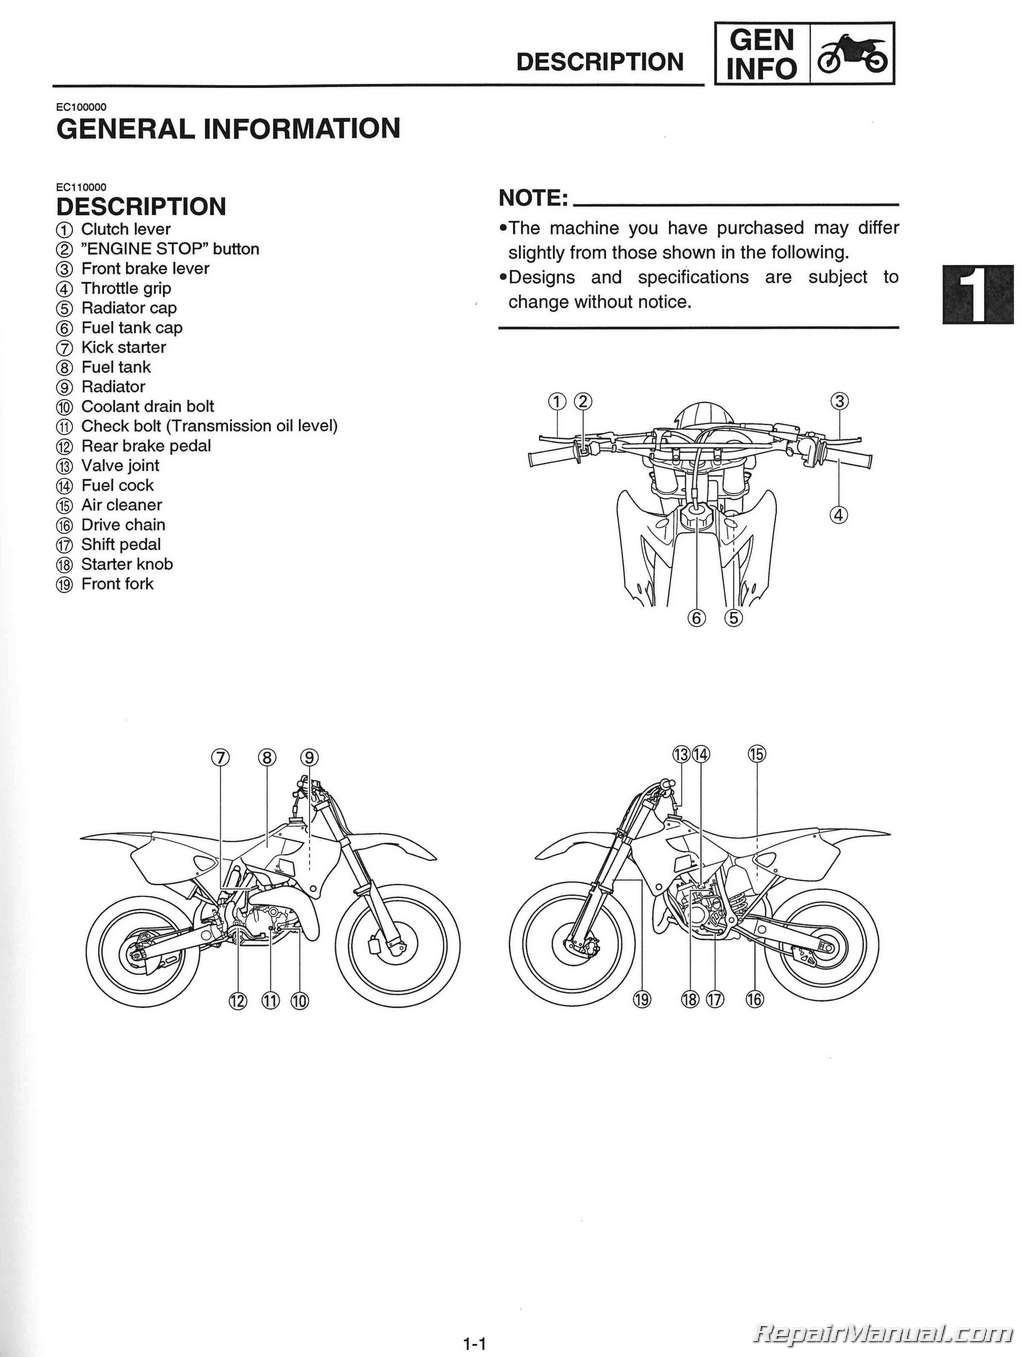 2001 yamaha yz125 motorcycle owners service manual lit. Black Bedroom Furniture Sets. Home Design Ideas